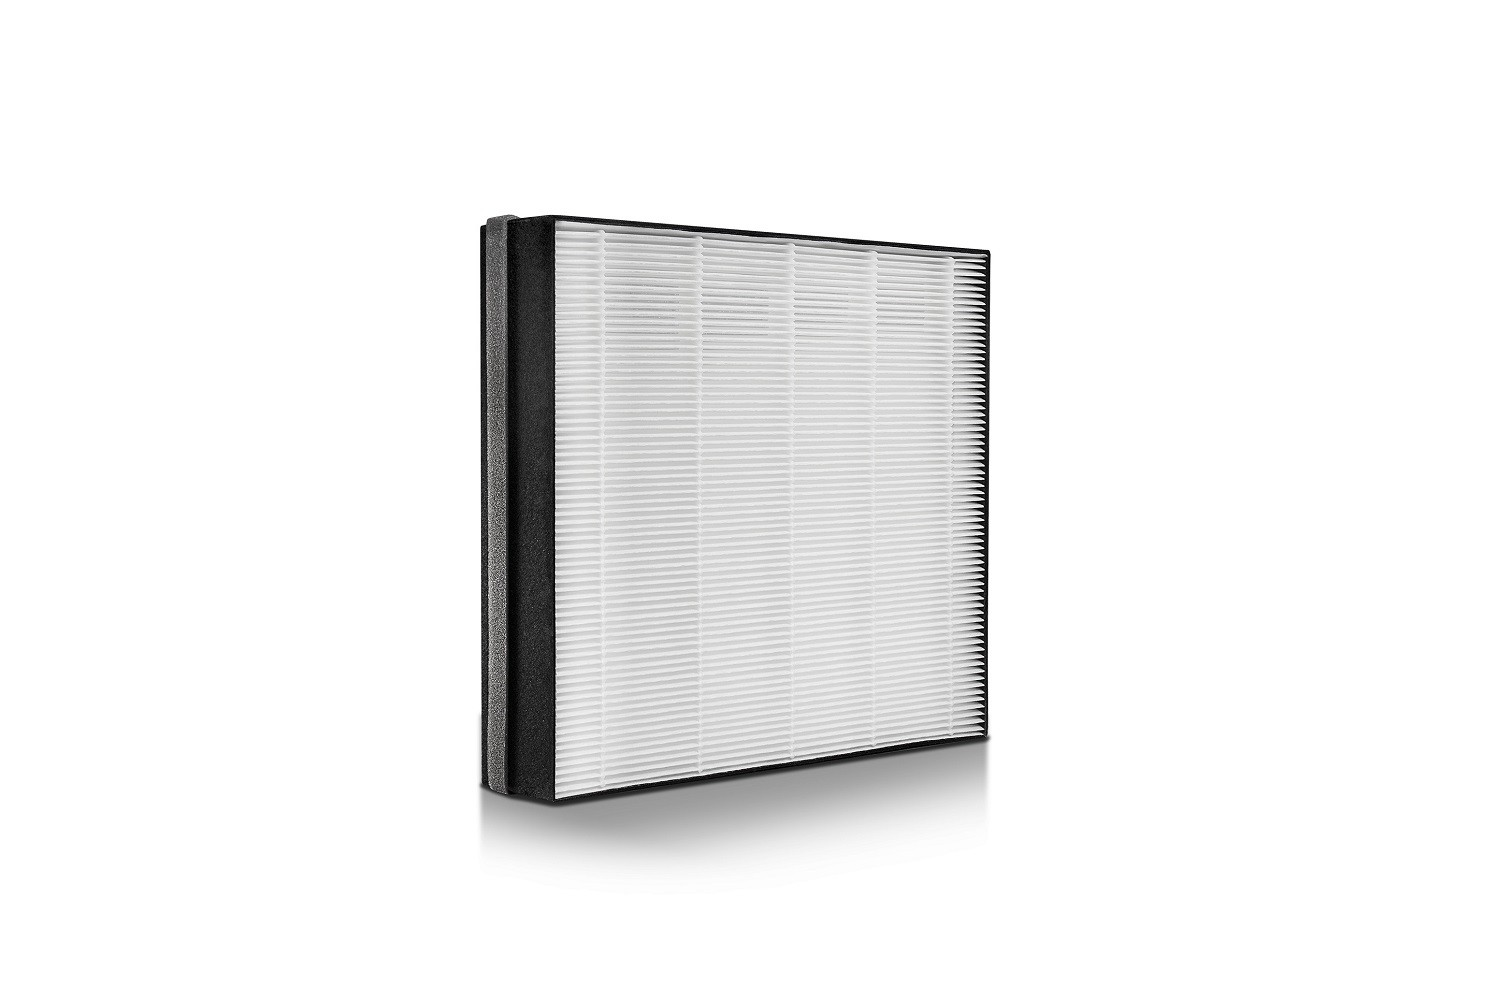 NanoProtect S1 HEPA Filter FY1119